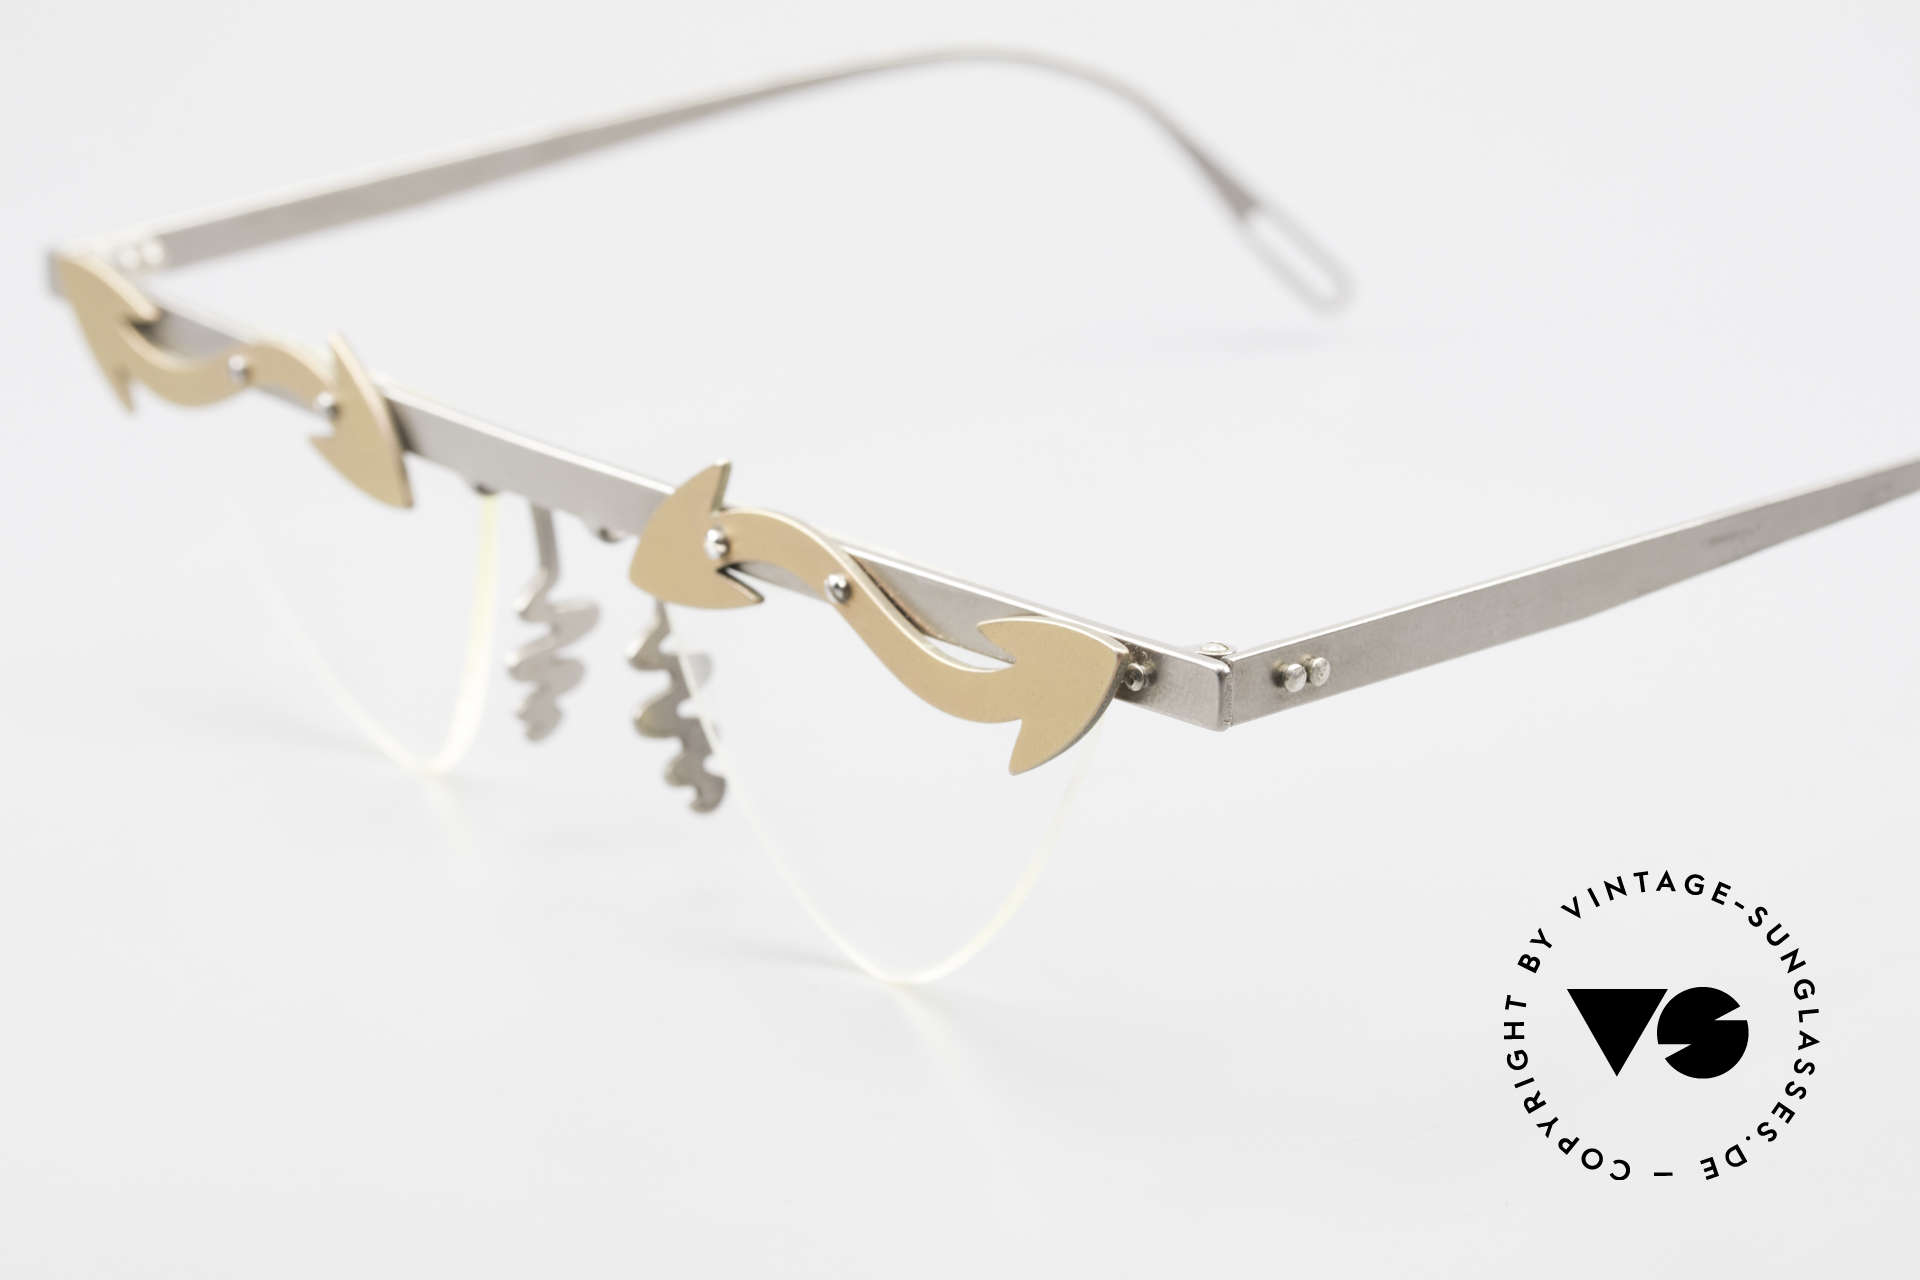 Theo Belgium Tita II Heart Shaped Eyeglasses Titan, the clear DEMO lenses are fixed with screws at the frame, Made for Women